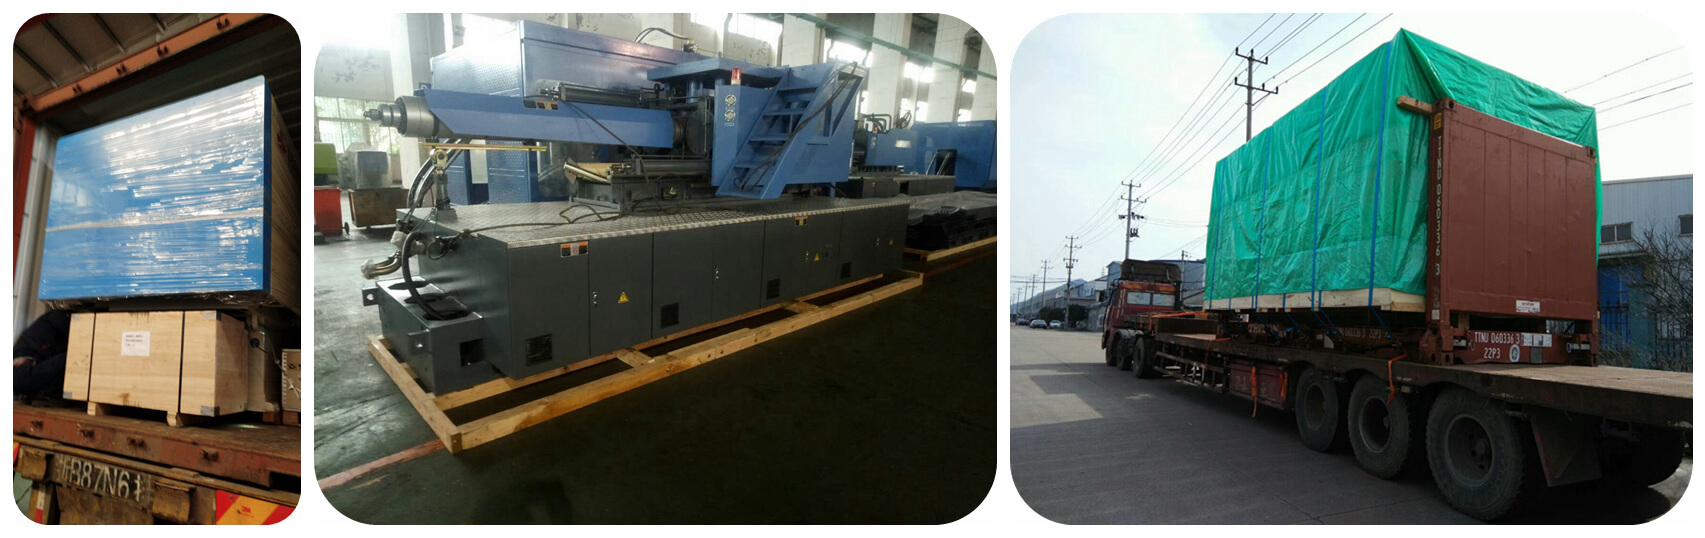 PET520 520Ton PET Preform Injection Molding Machine